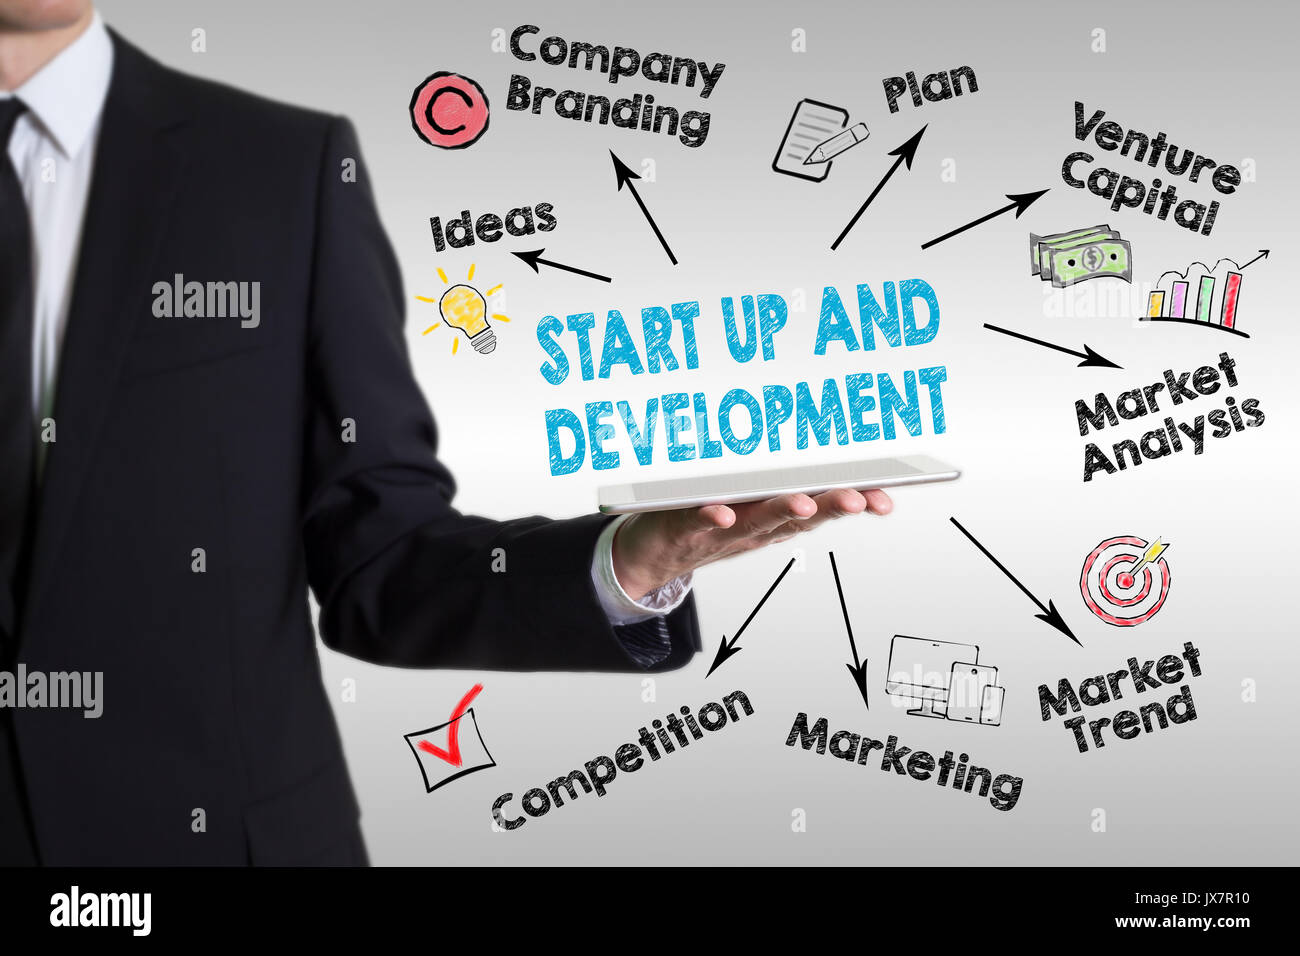 Start Up and Development concept. Man holding a tablet computer. - Stock Image